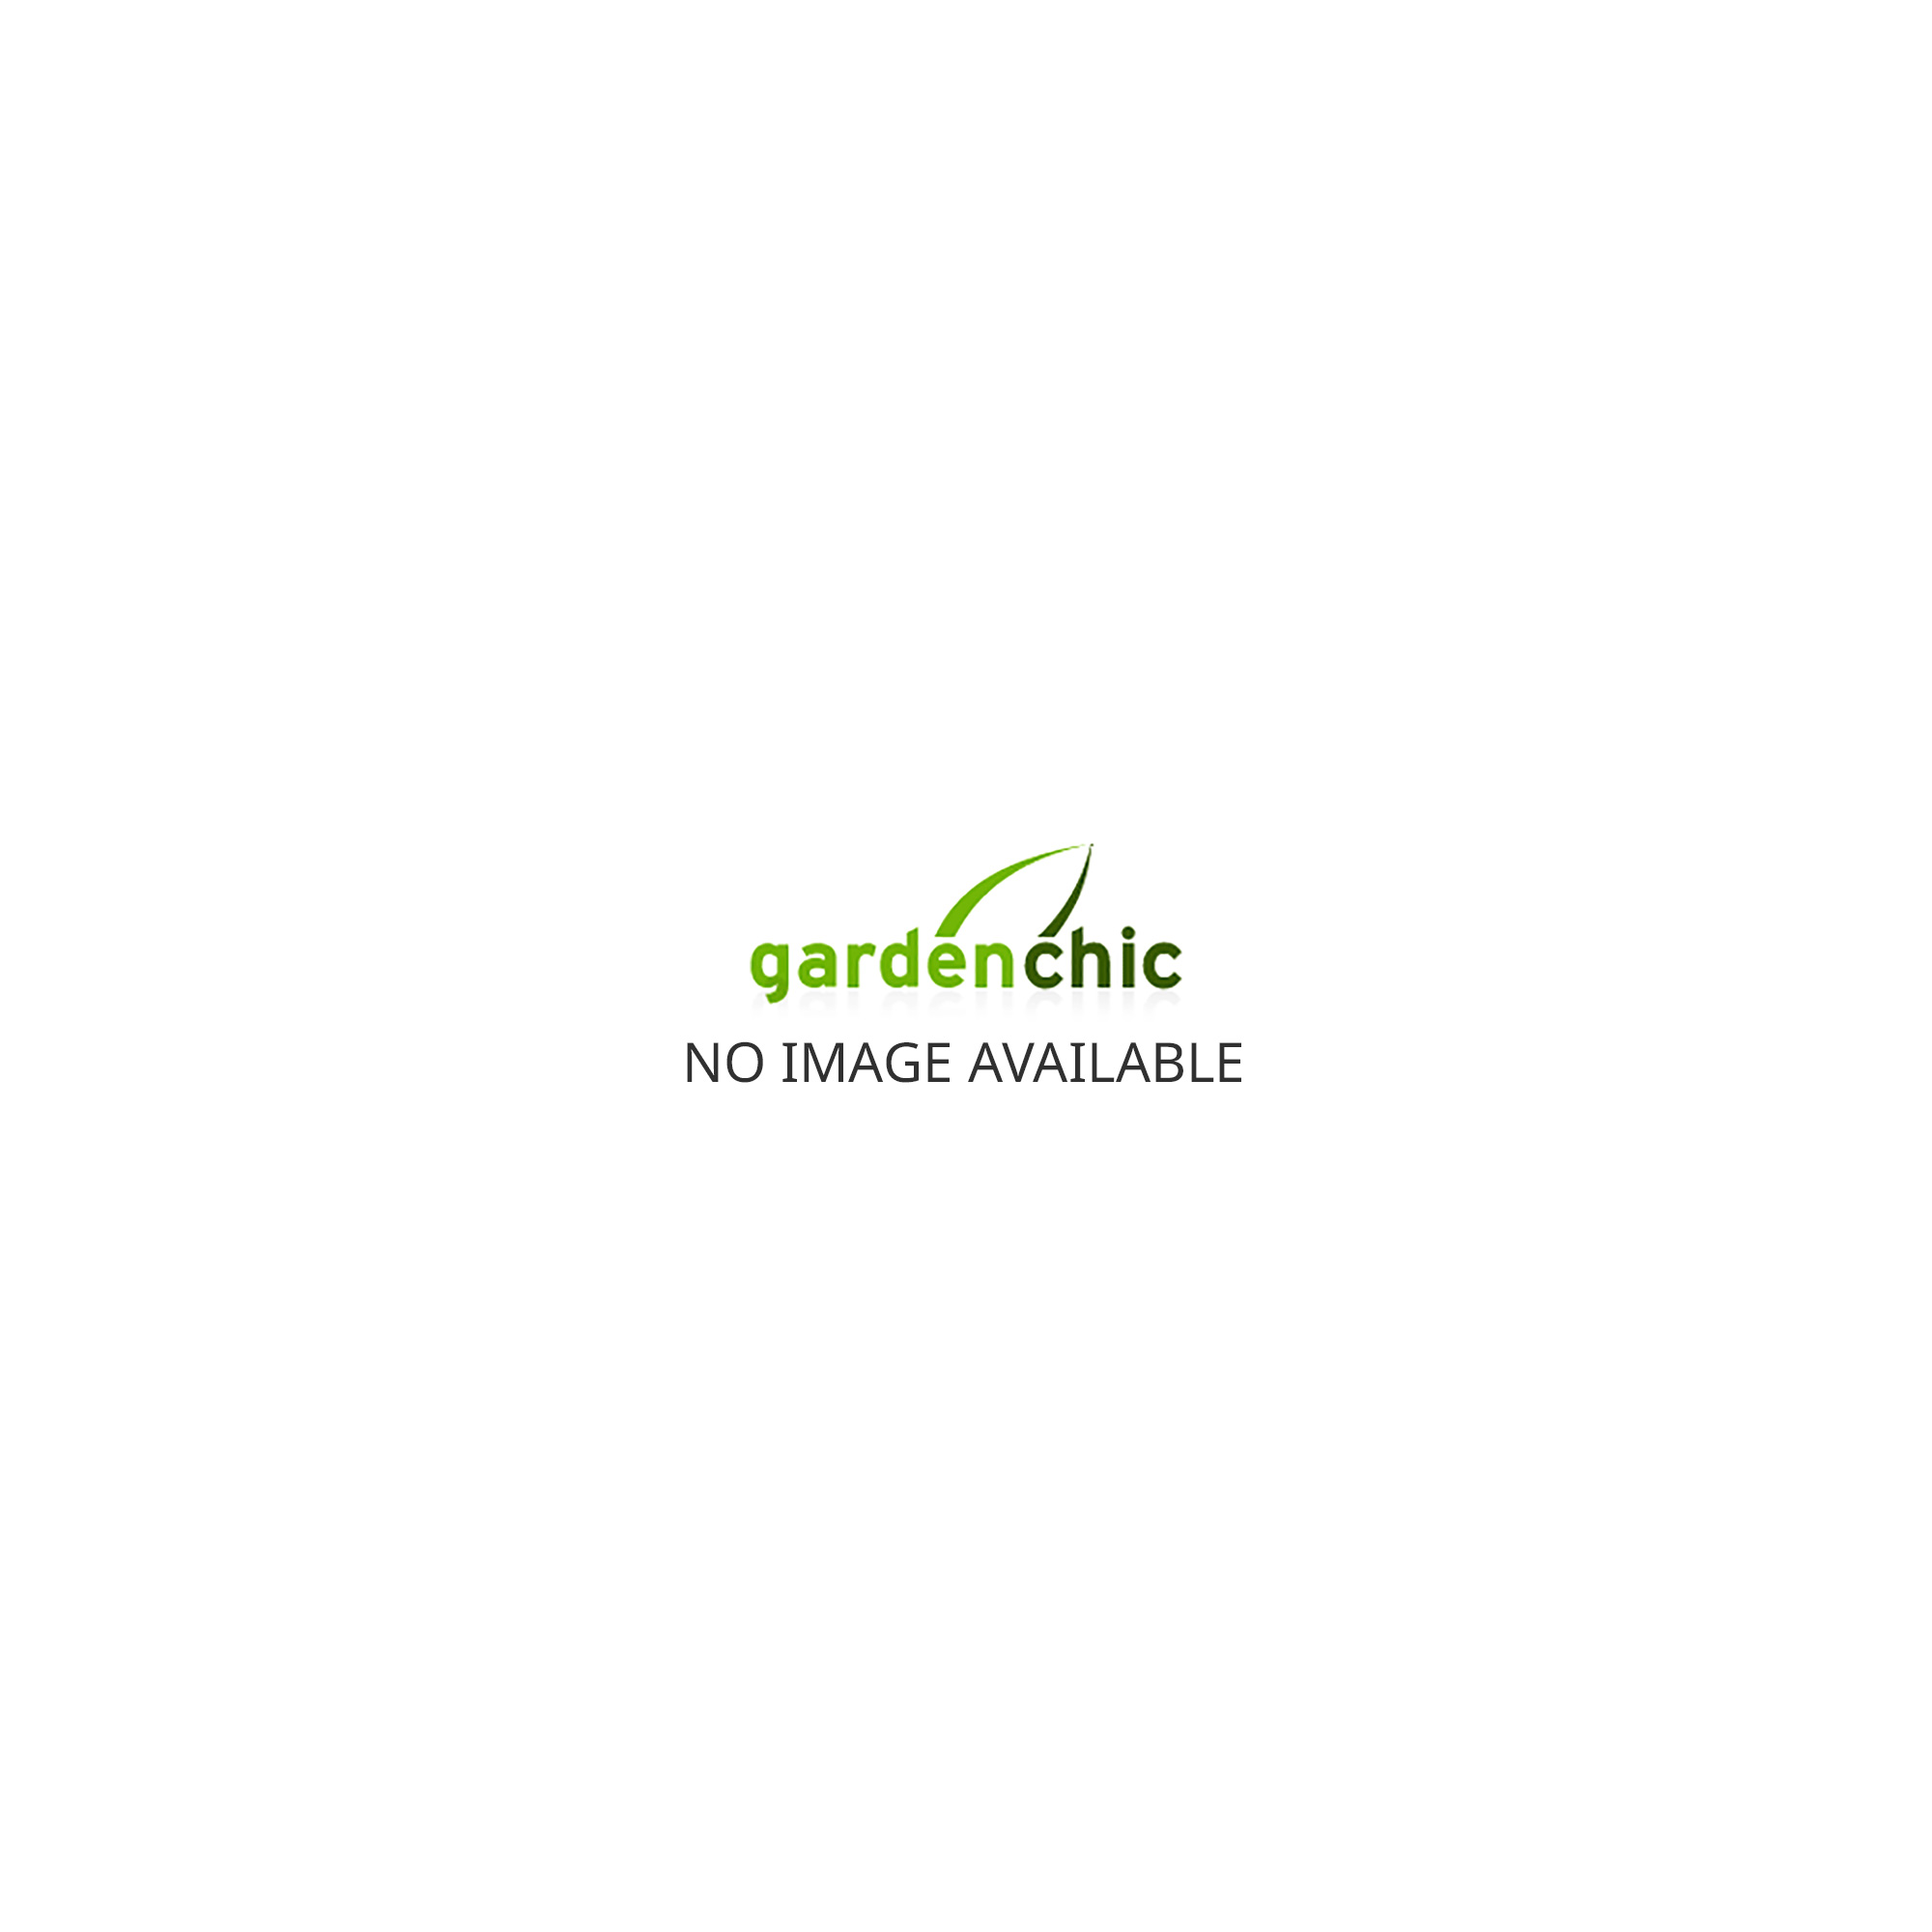 Venus 2500 6ft x 4ft Greenhouse - Green FREE Matching Base until APRIL 2018